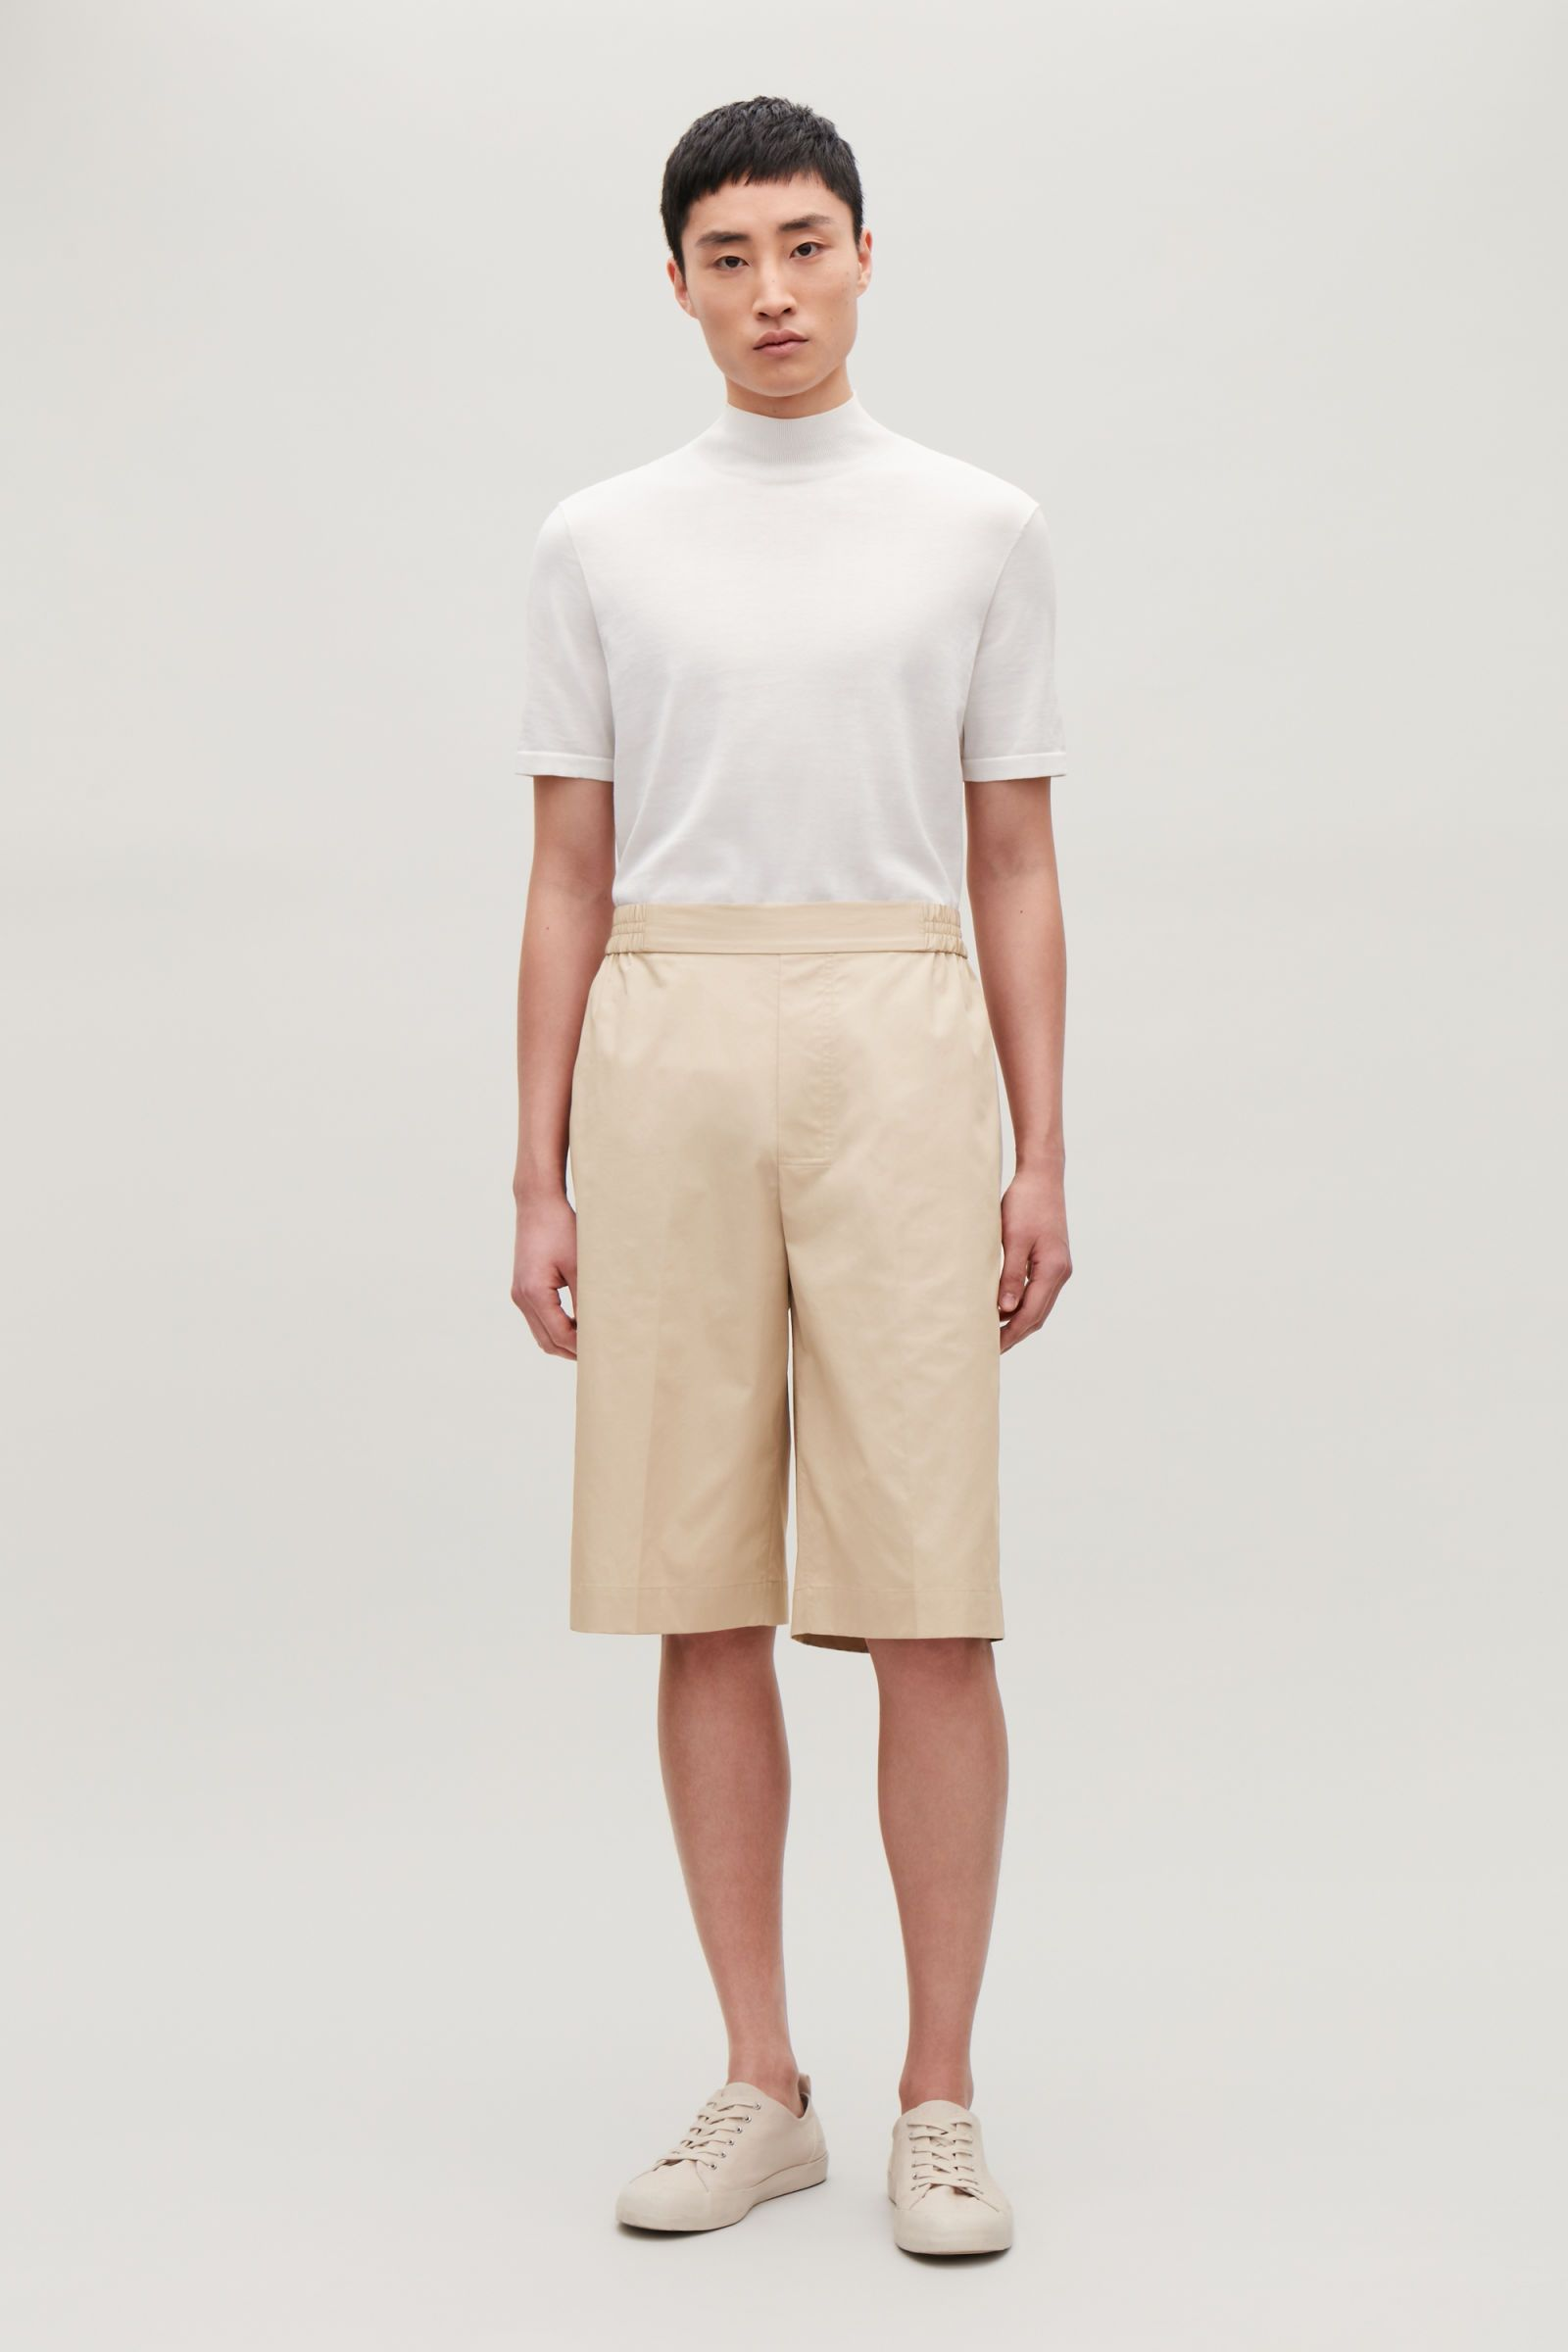 Cos green dress 2018  zoomed image  Male Wardrobe  Pinterest  Cotton shorts Cotton and